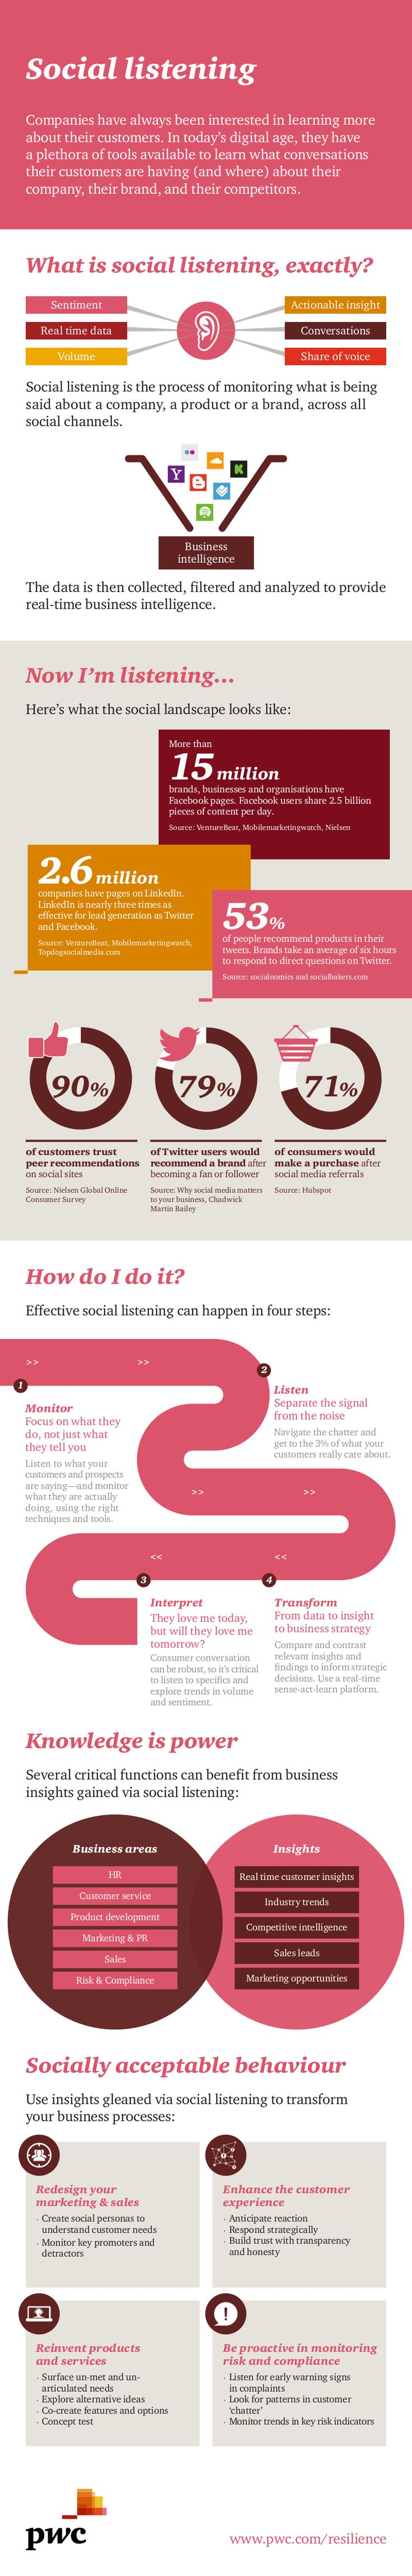 Social #listening essential element of #digitalstrategy #infographic